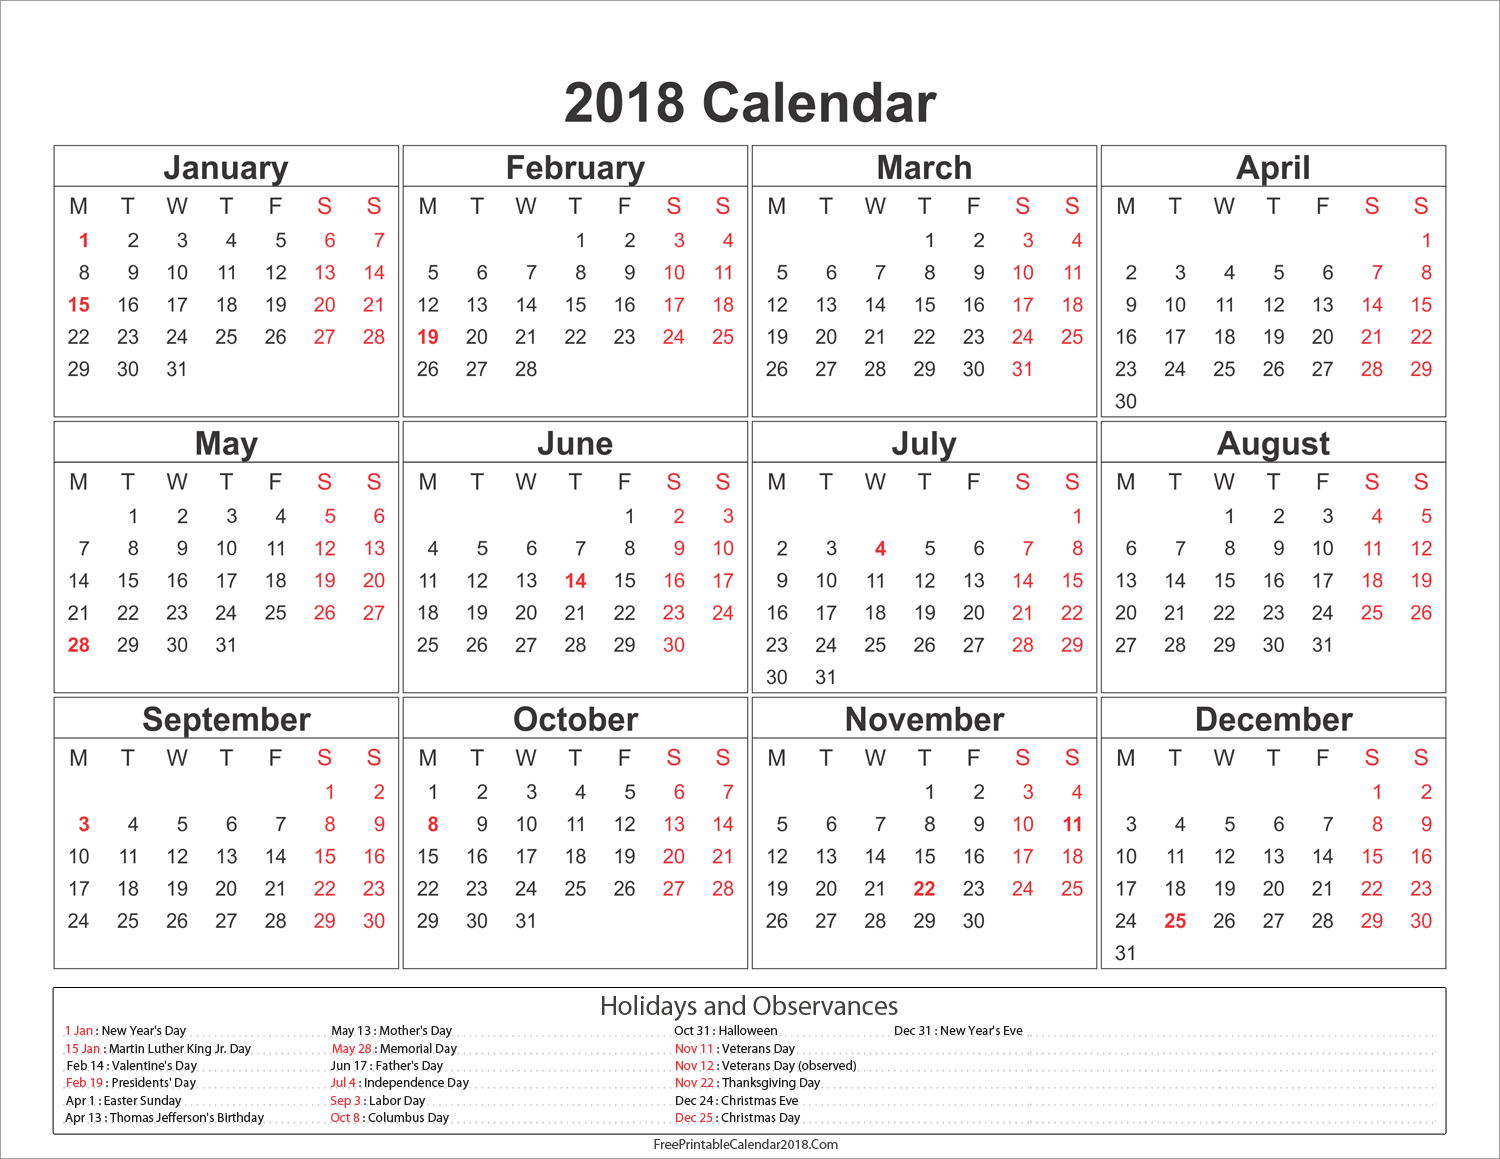 January 2018 Calendar Horizontal. . #January 2018 Calendar